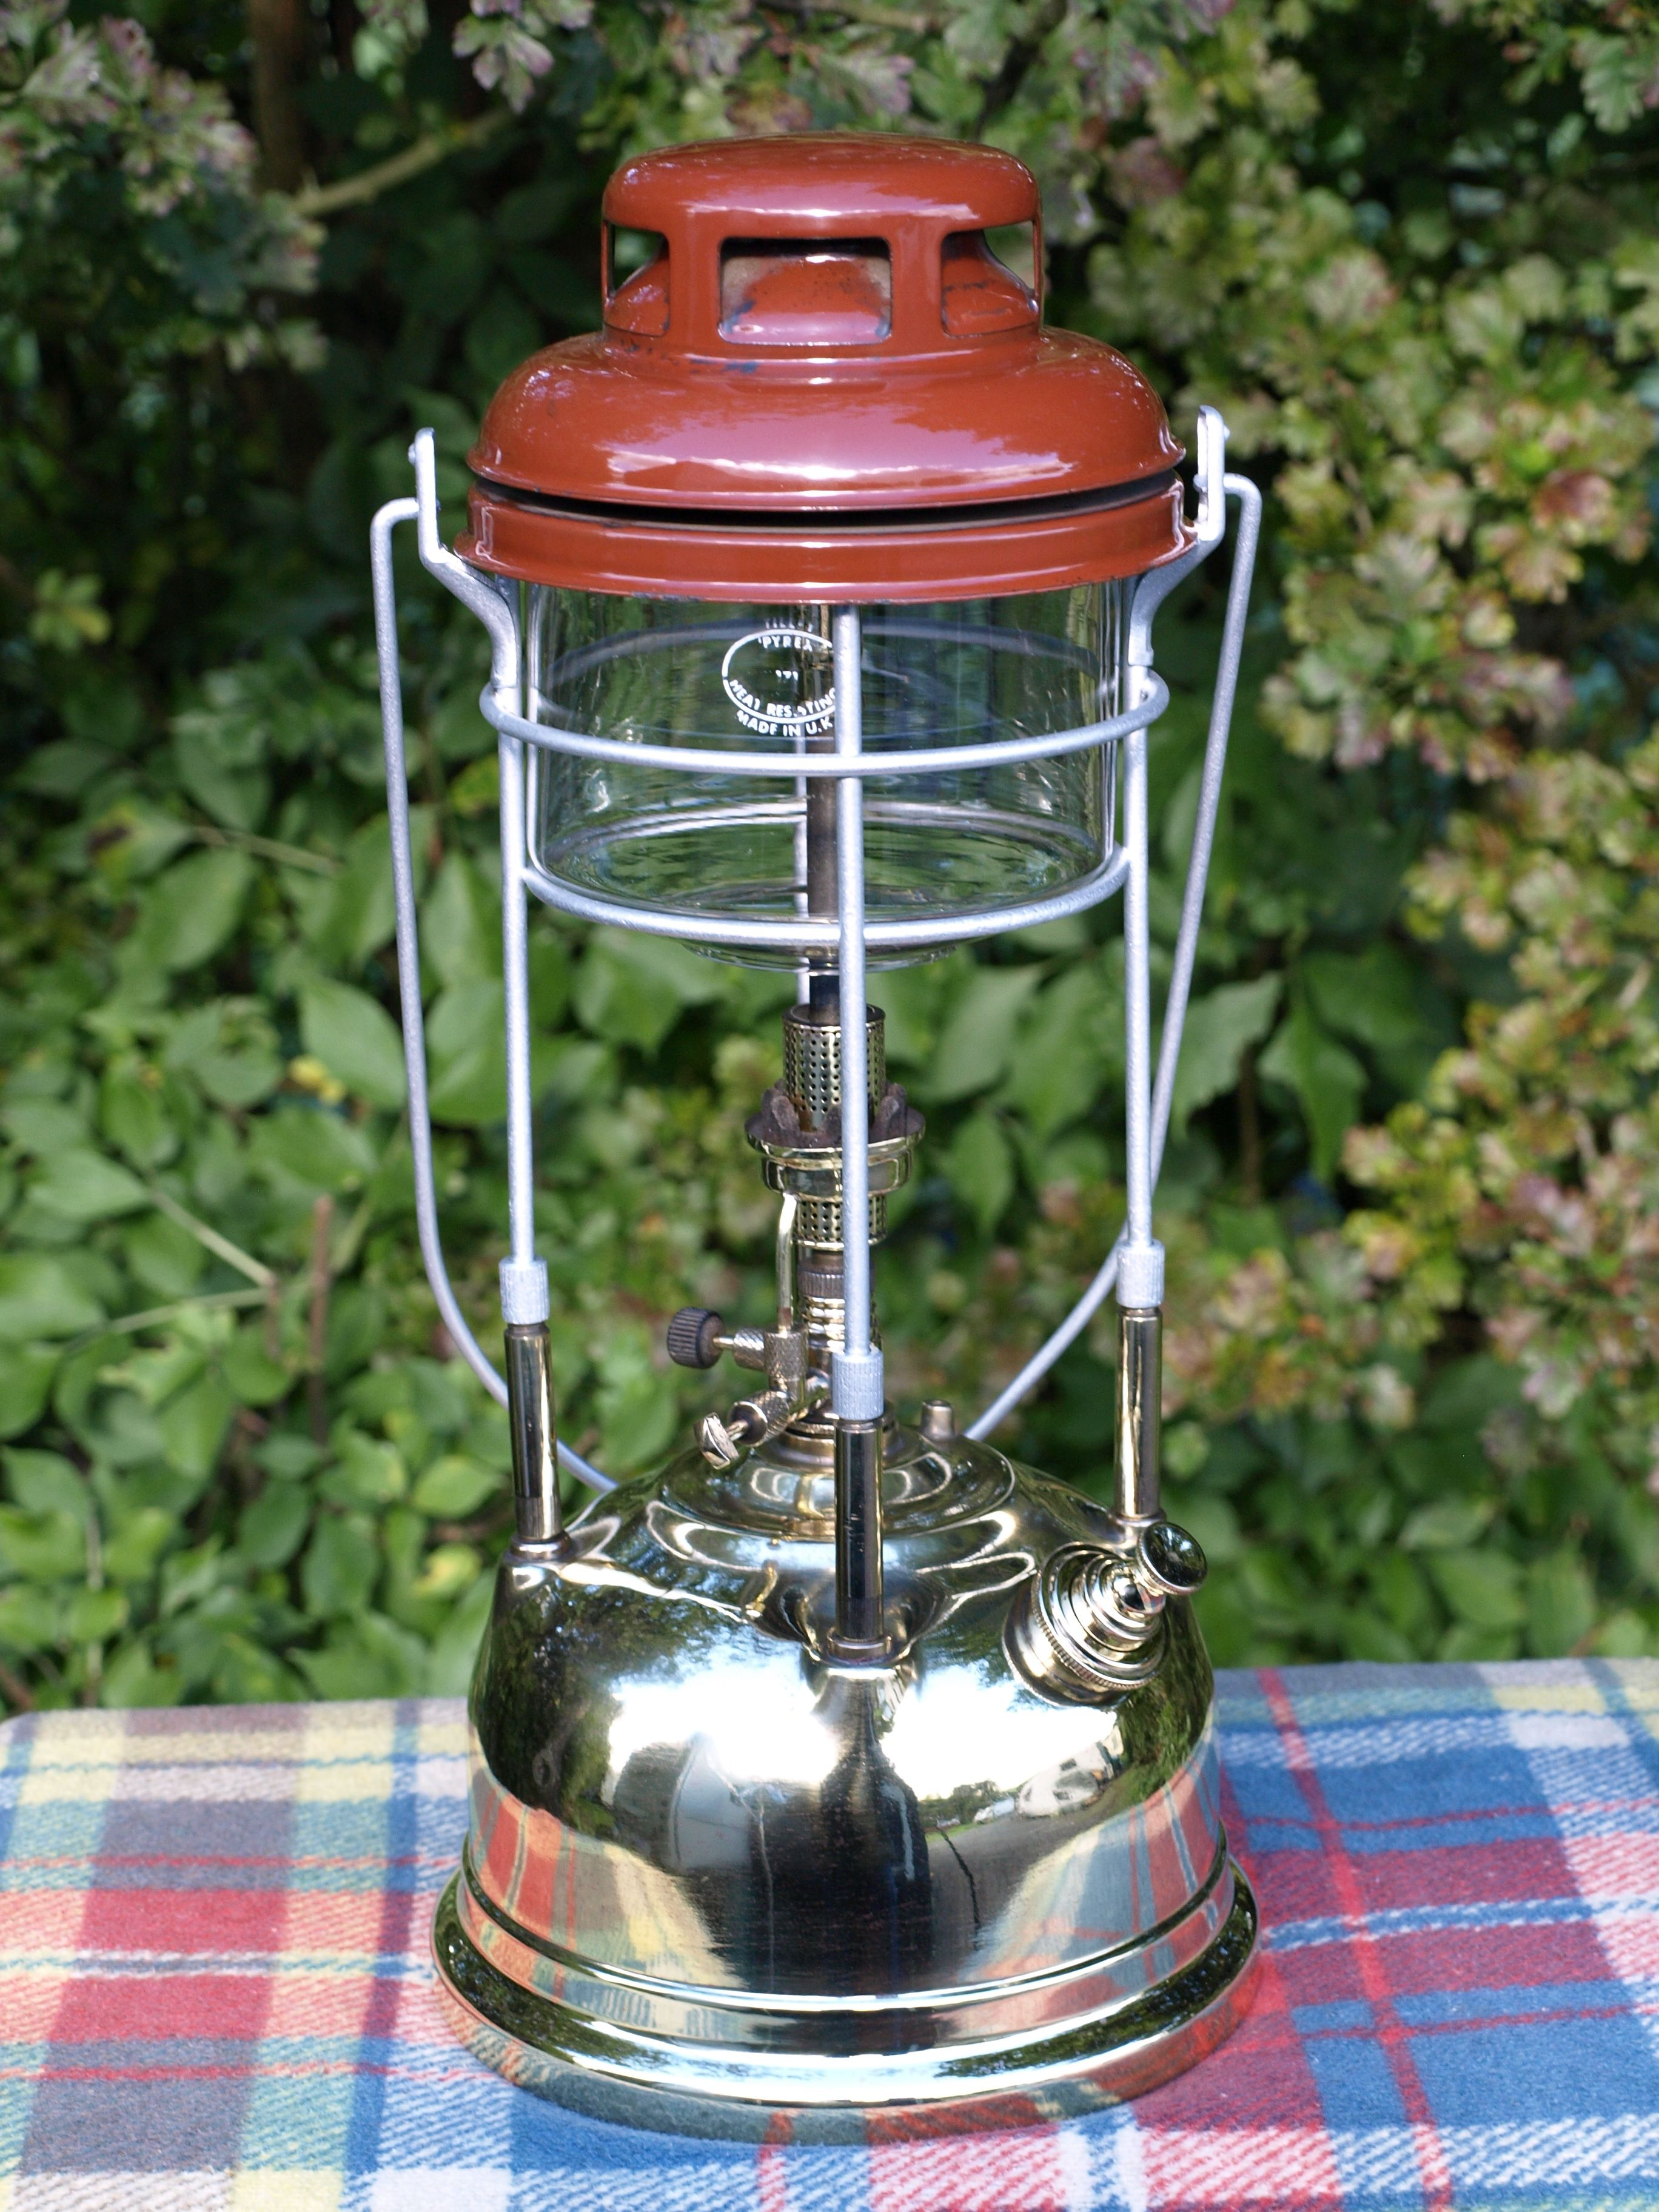 Tilley Lamp Railway Br Old Lanterns Lantern Oil Lamps Mantle